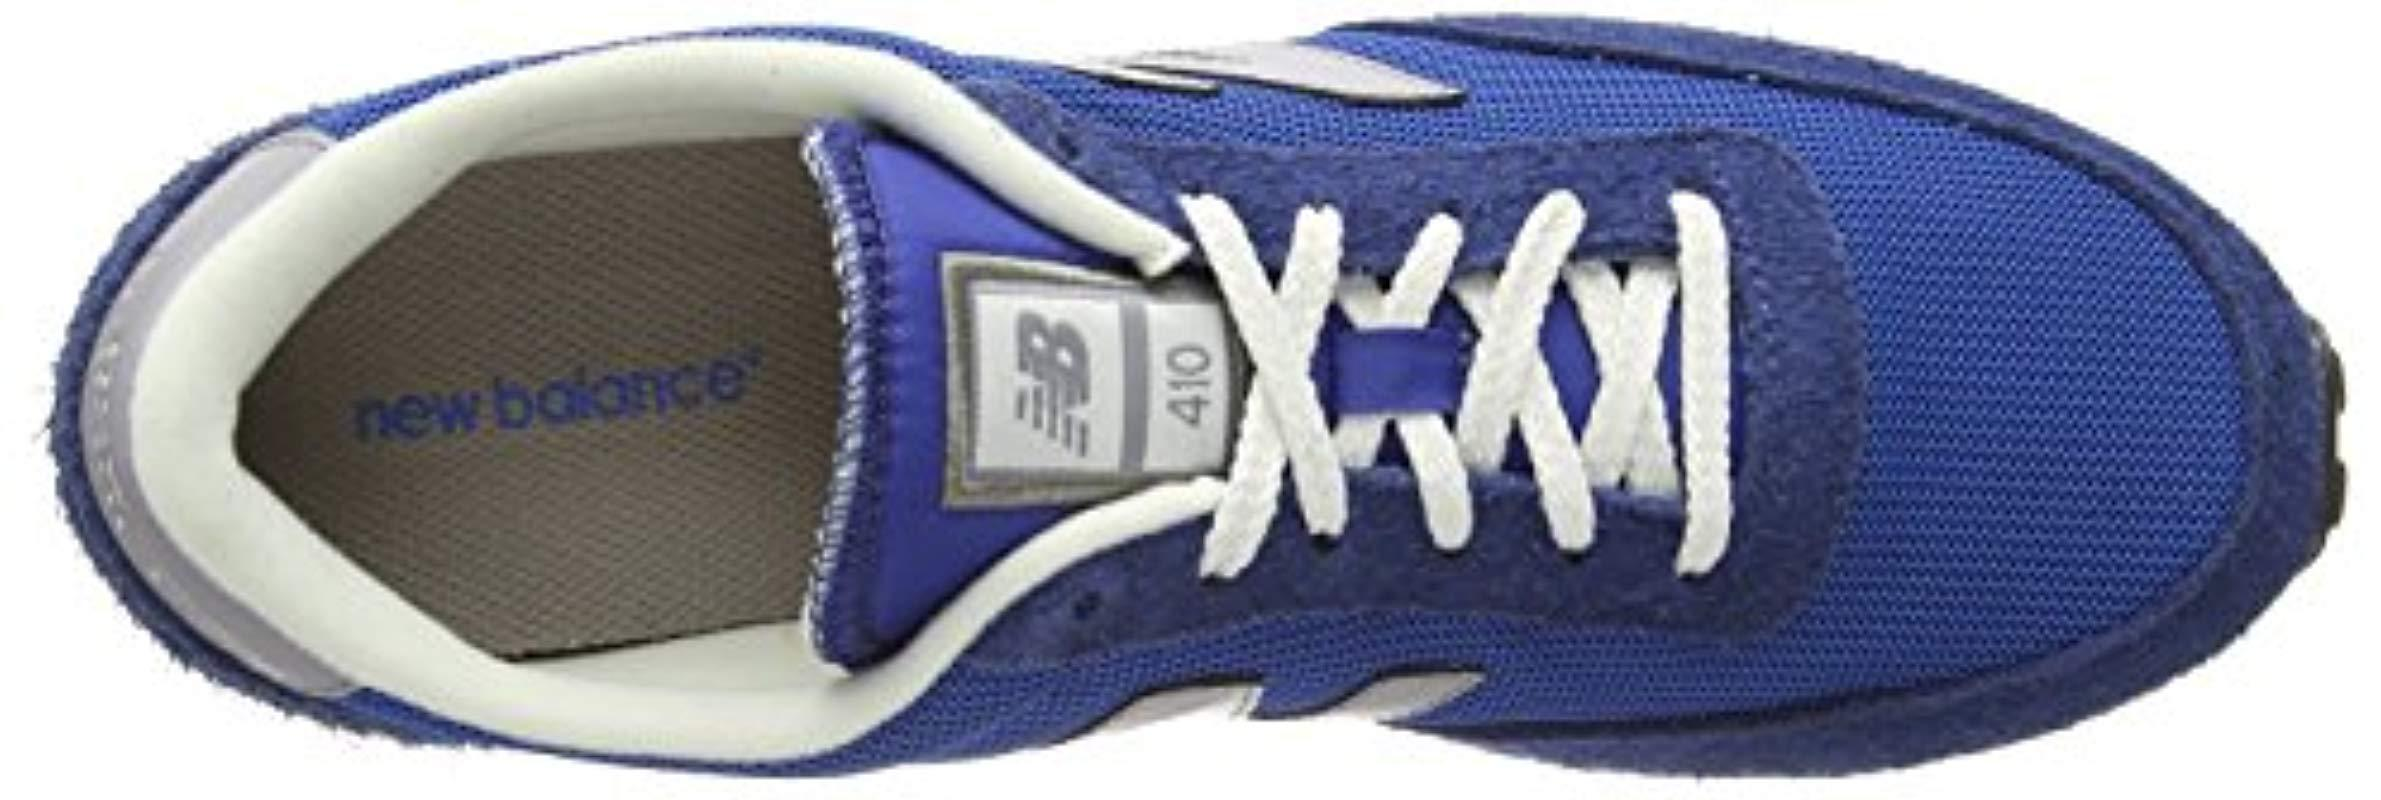 New Balance U410hbgy, Unisex Adults' Sneakers in Blue for